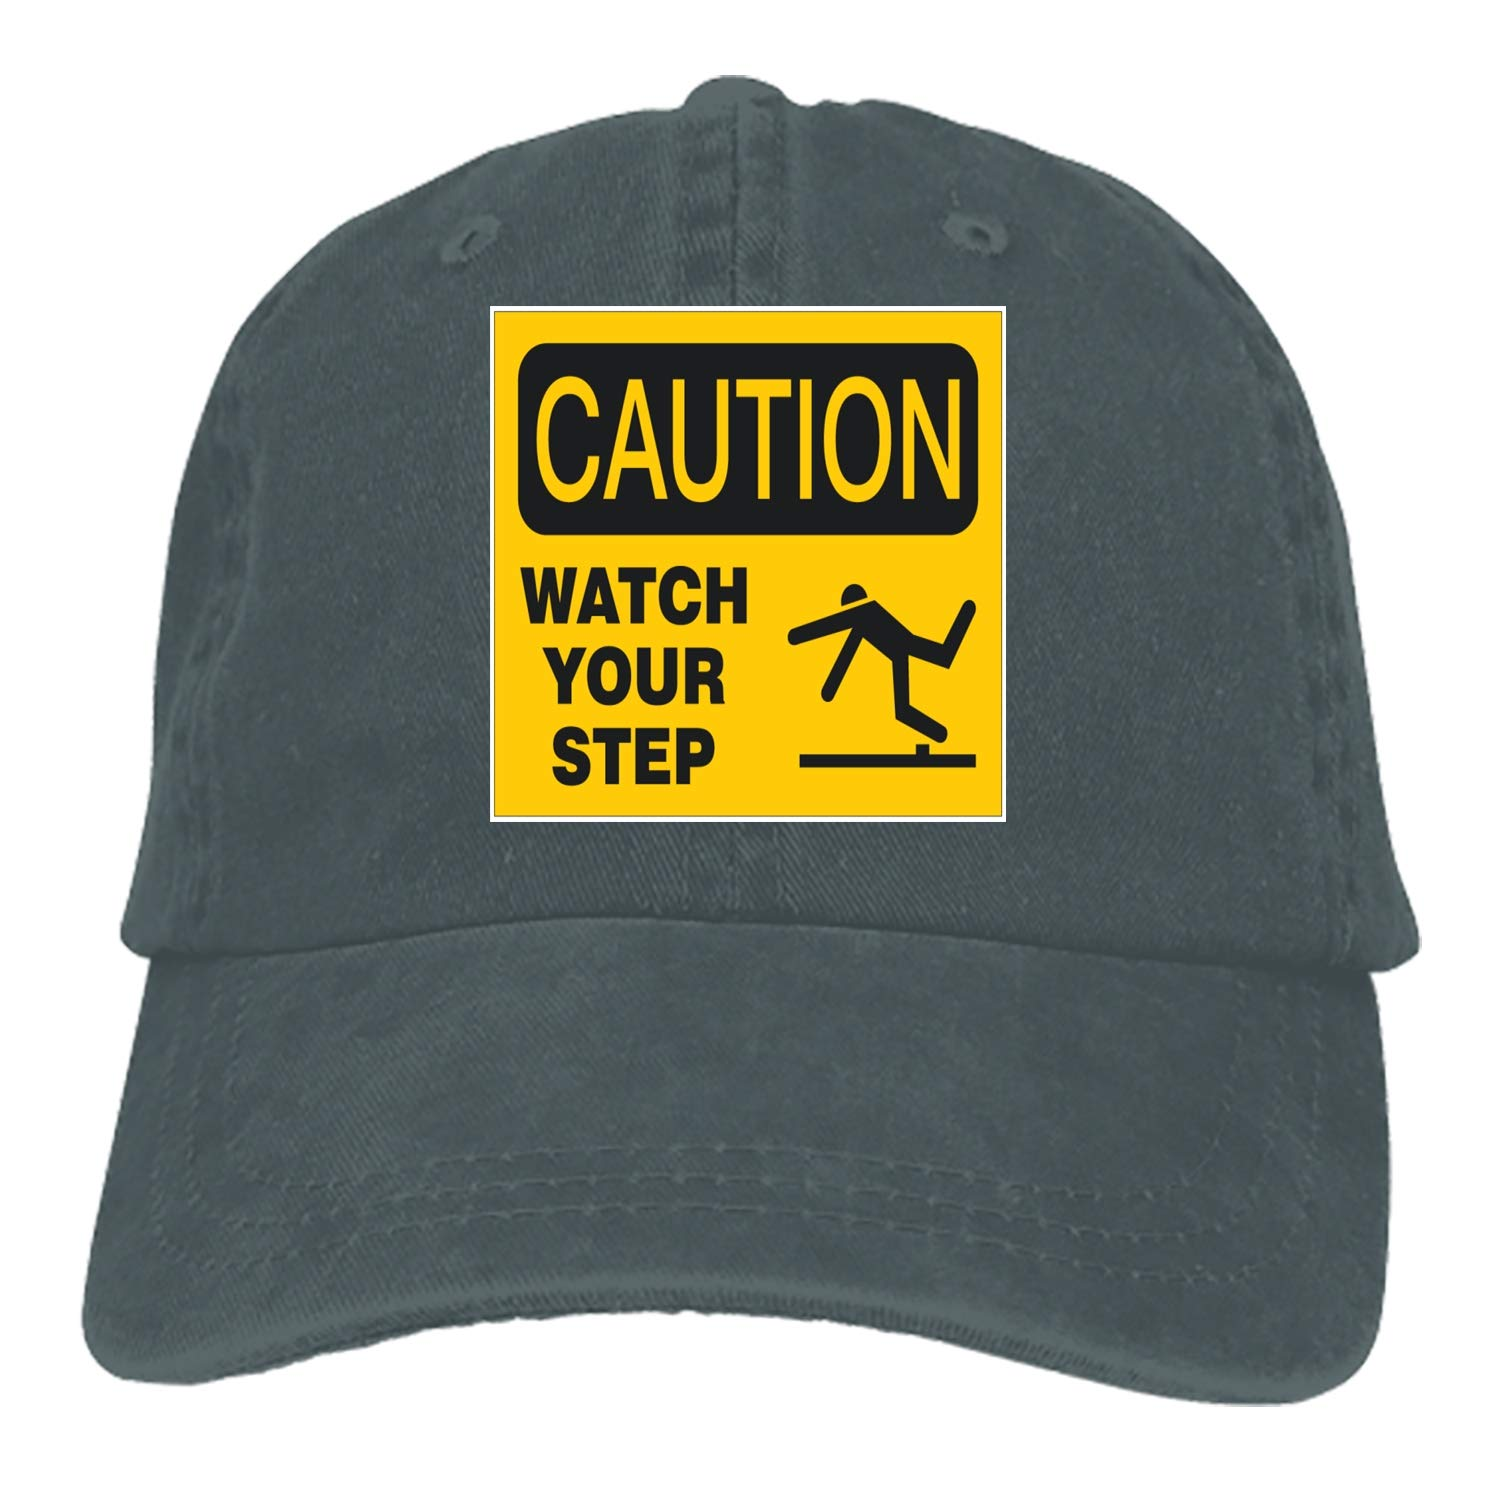 19841a2f45b Caution Your Step Adult Denim Dad Solid Baseball Cap Hat at Amazon Men s  Clothing store